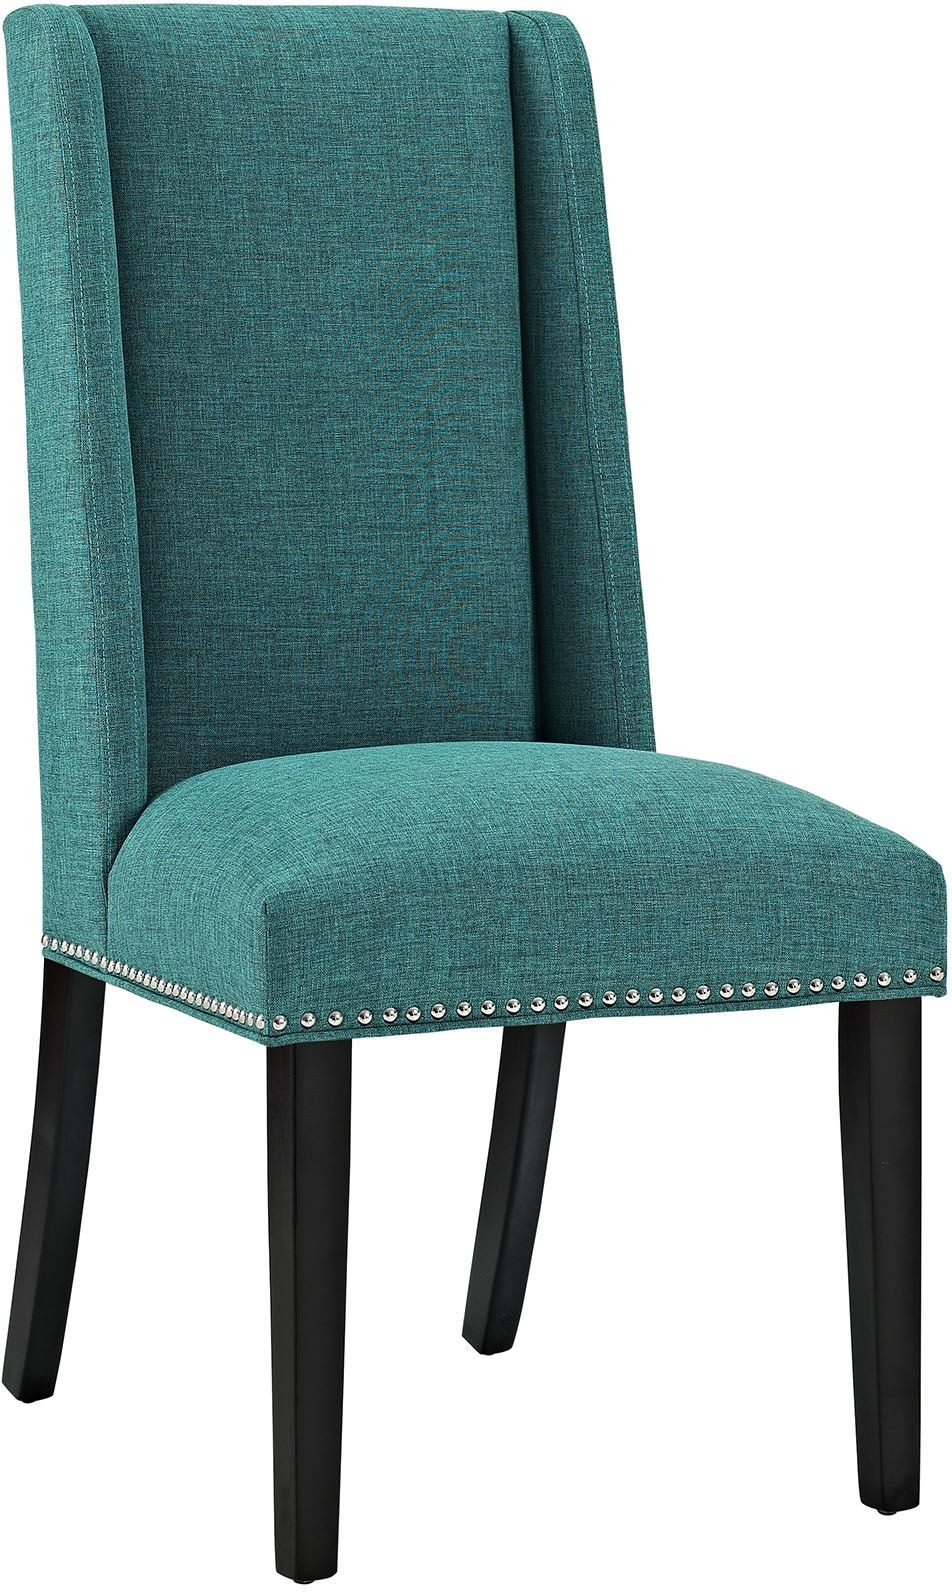 Baron Teal Upholstered Dining Chair From Renegade